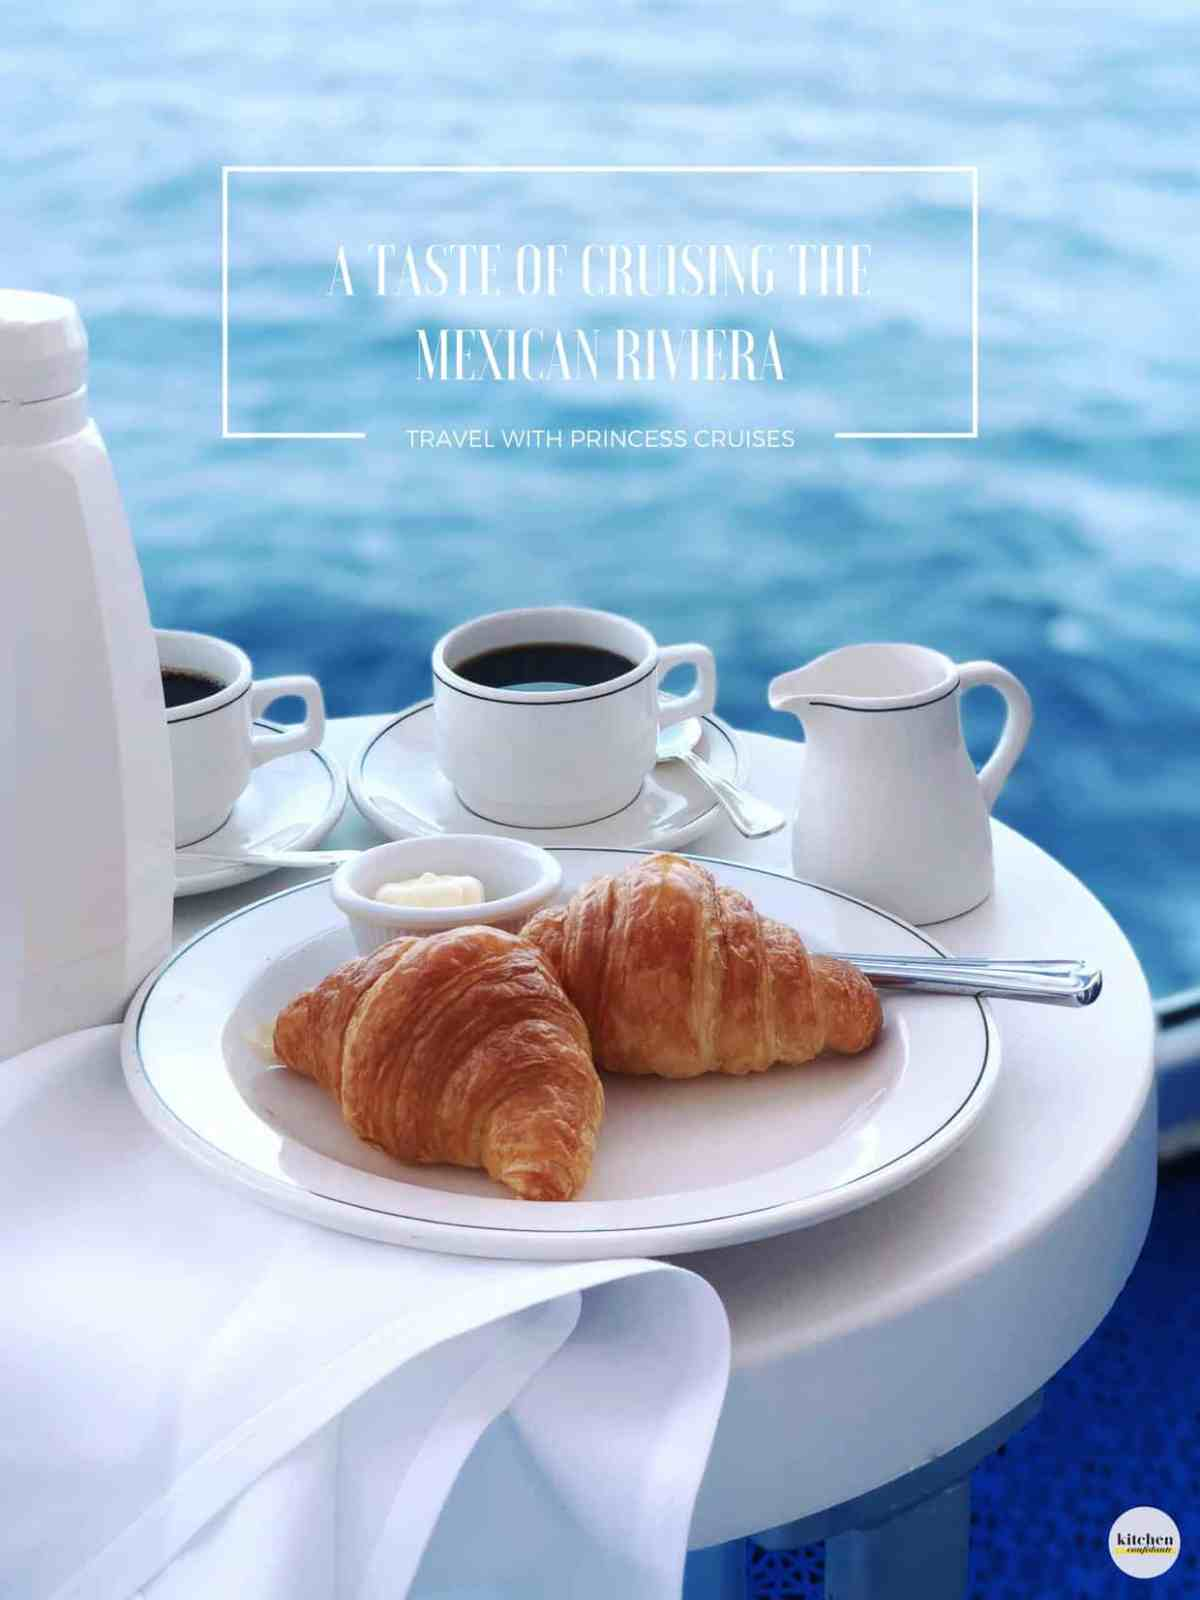 White plate filled with croissants on board the Ruby Princess cruise ship.